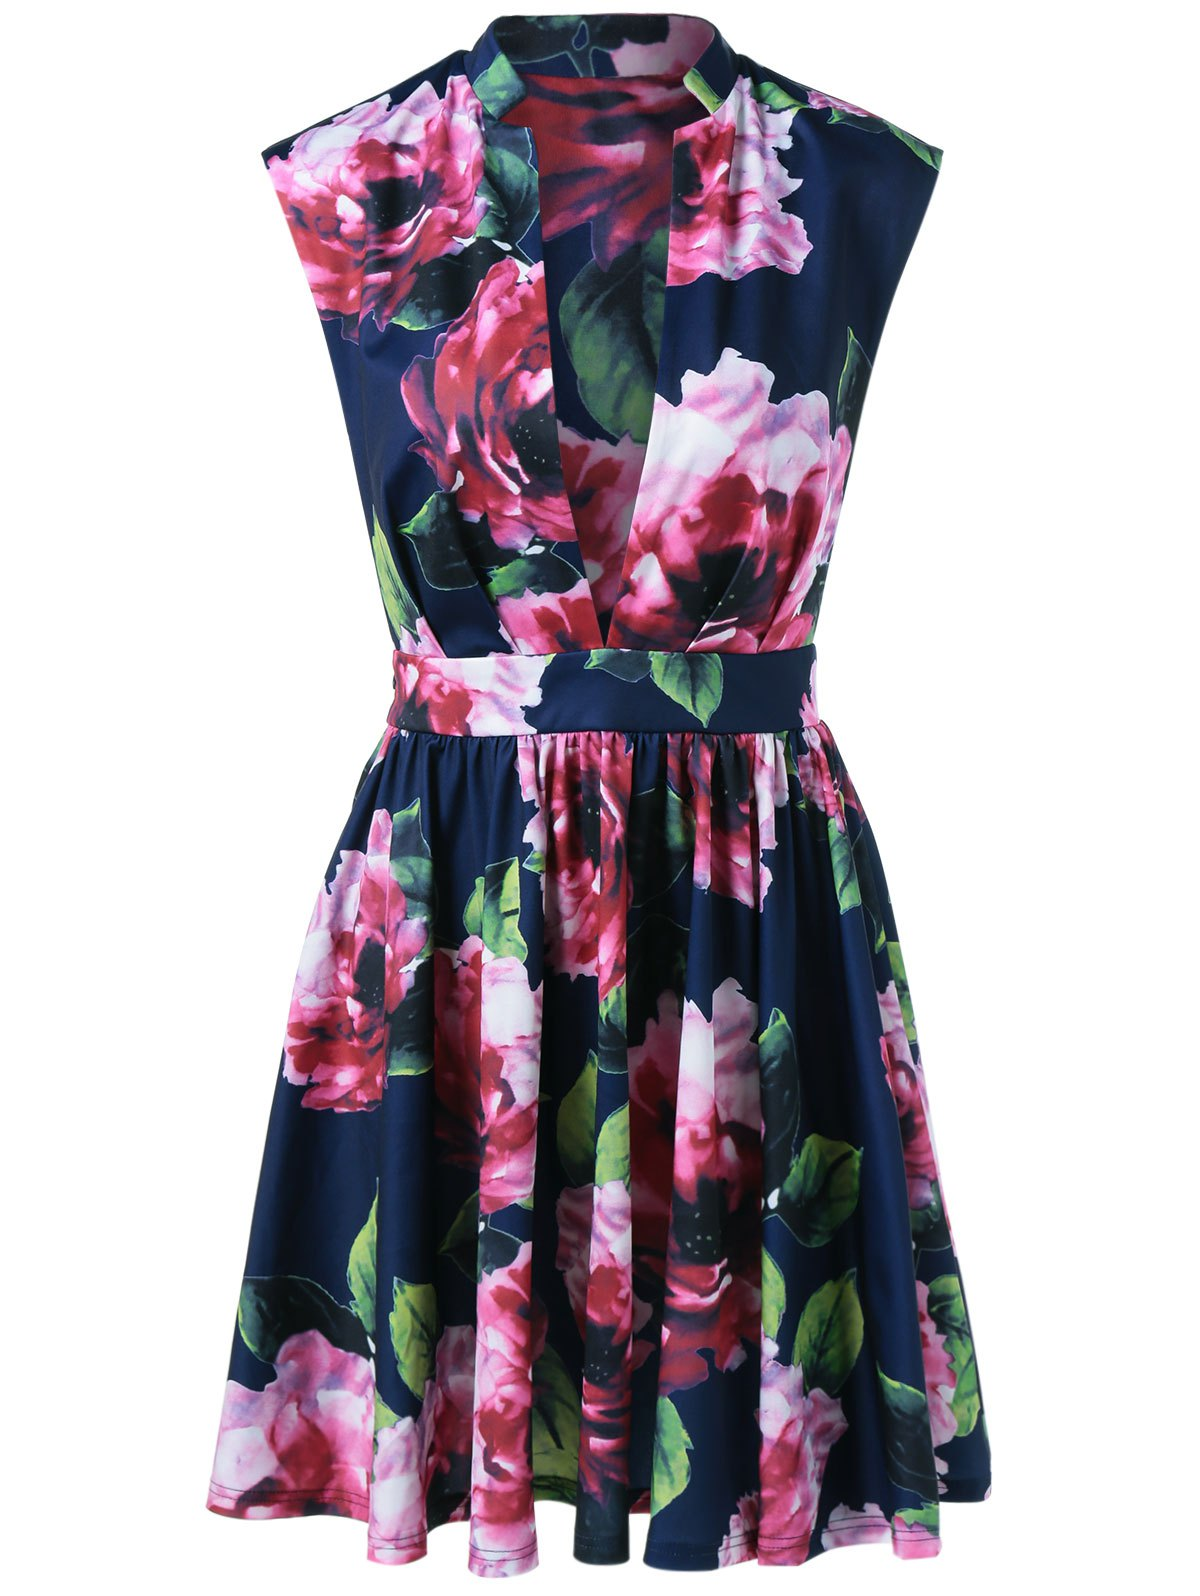 Low Cut Floral Fit and Flare Dress